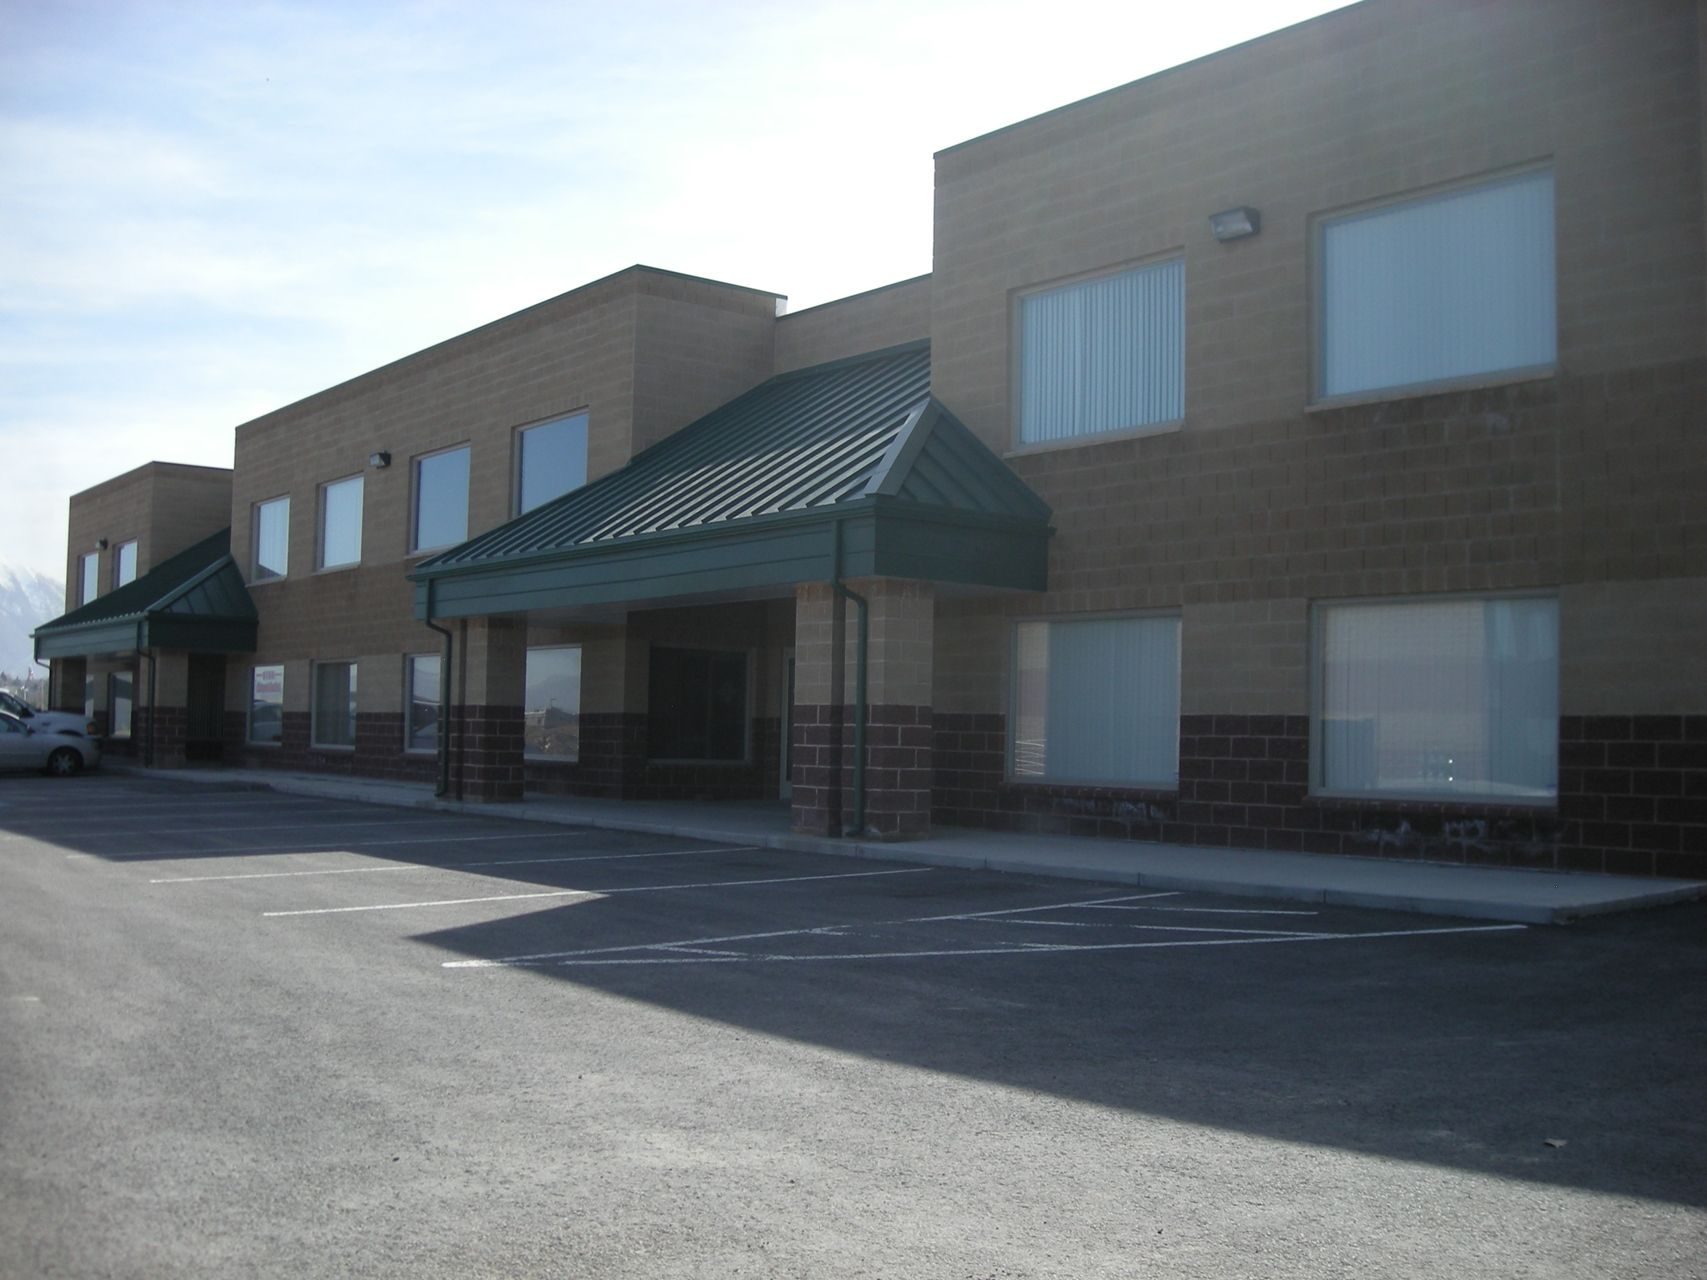 Access Denied Commercial Real Estate Real Estate Commercial Property